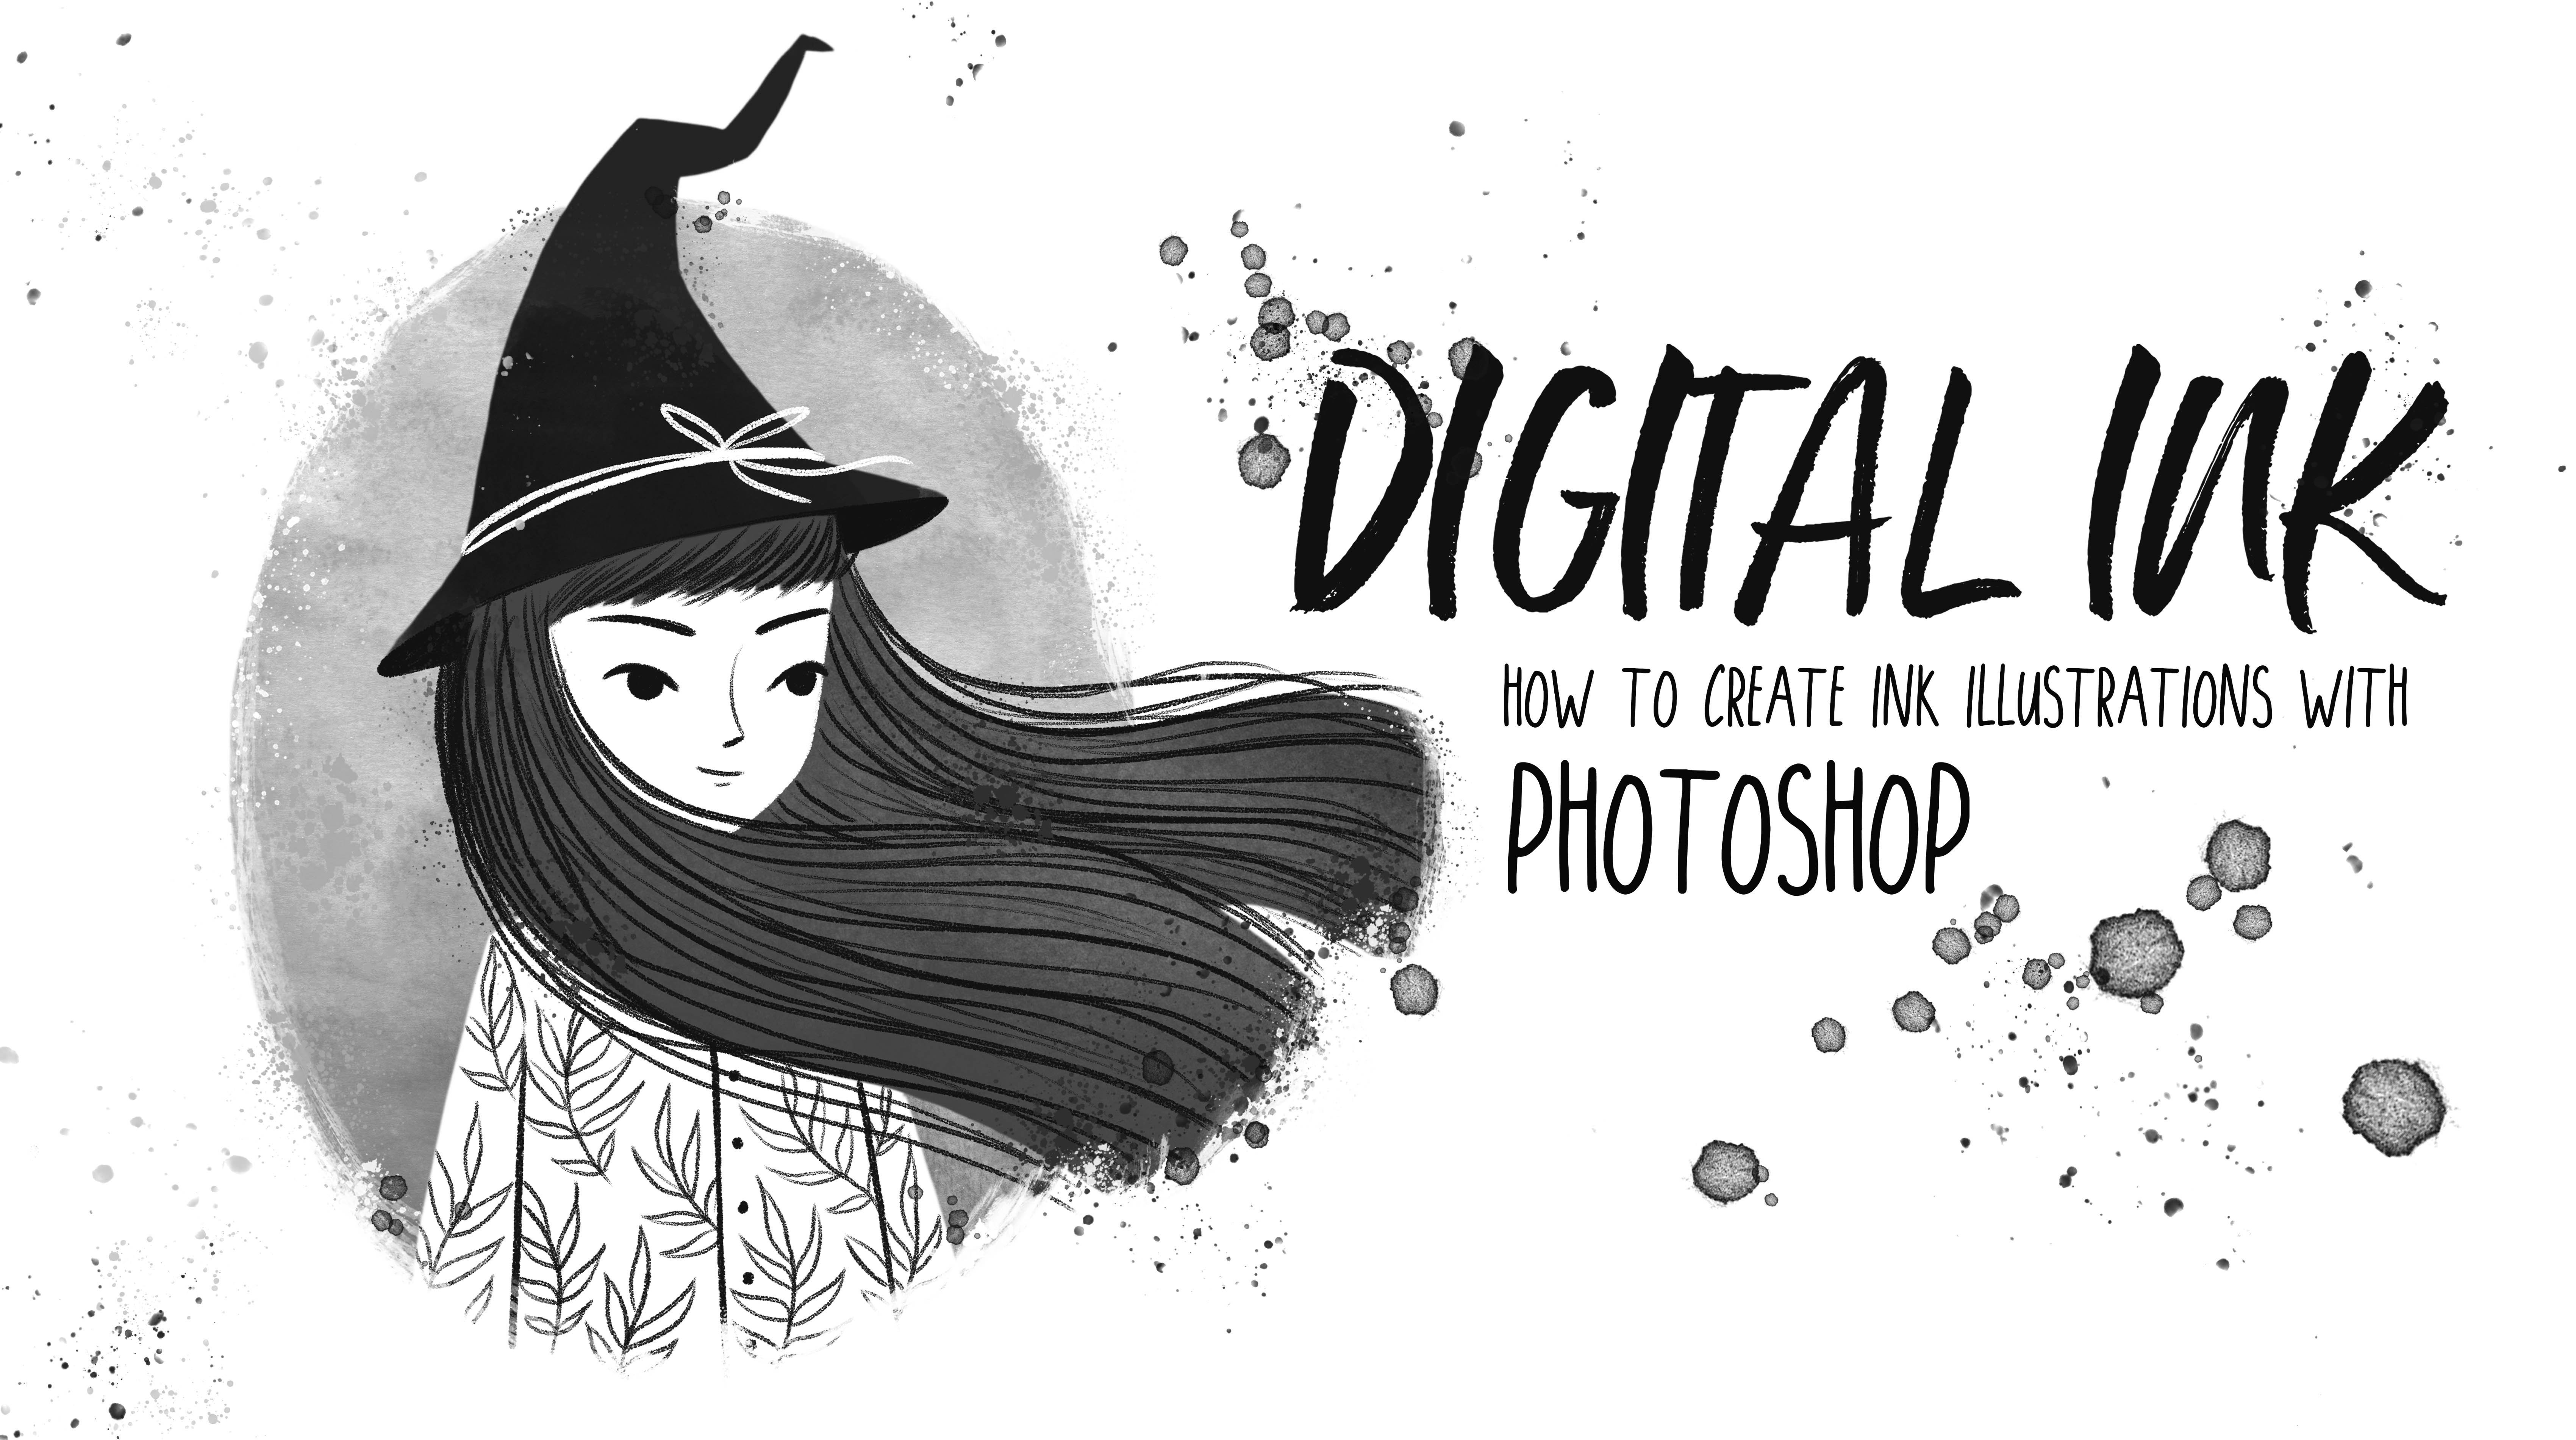 Digital Ink - How to Create Ink Illustrations with Photoshop